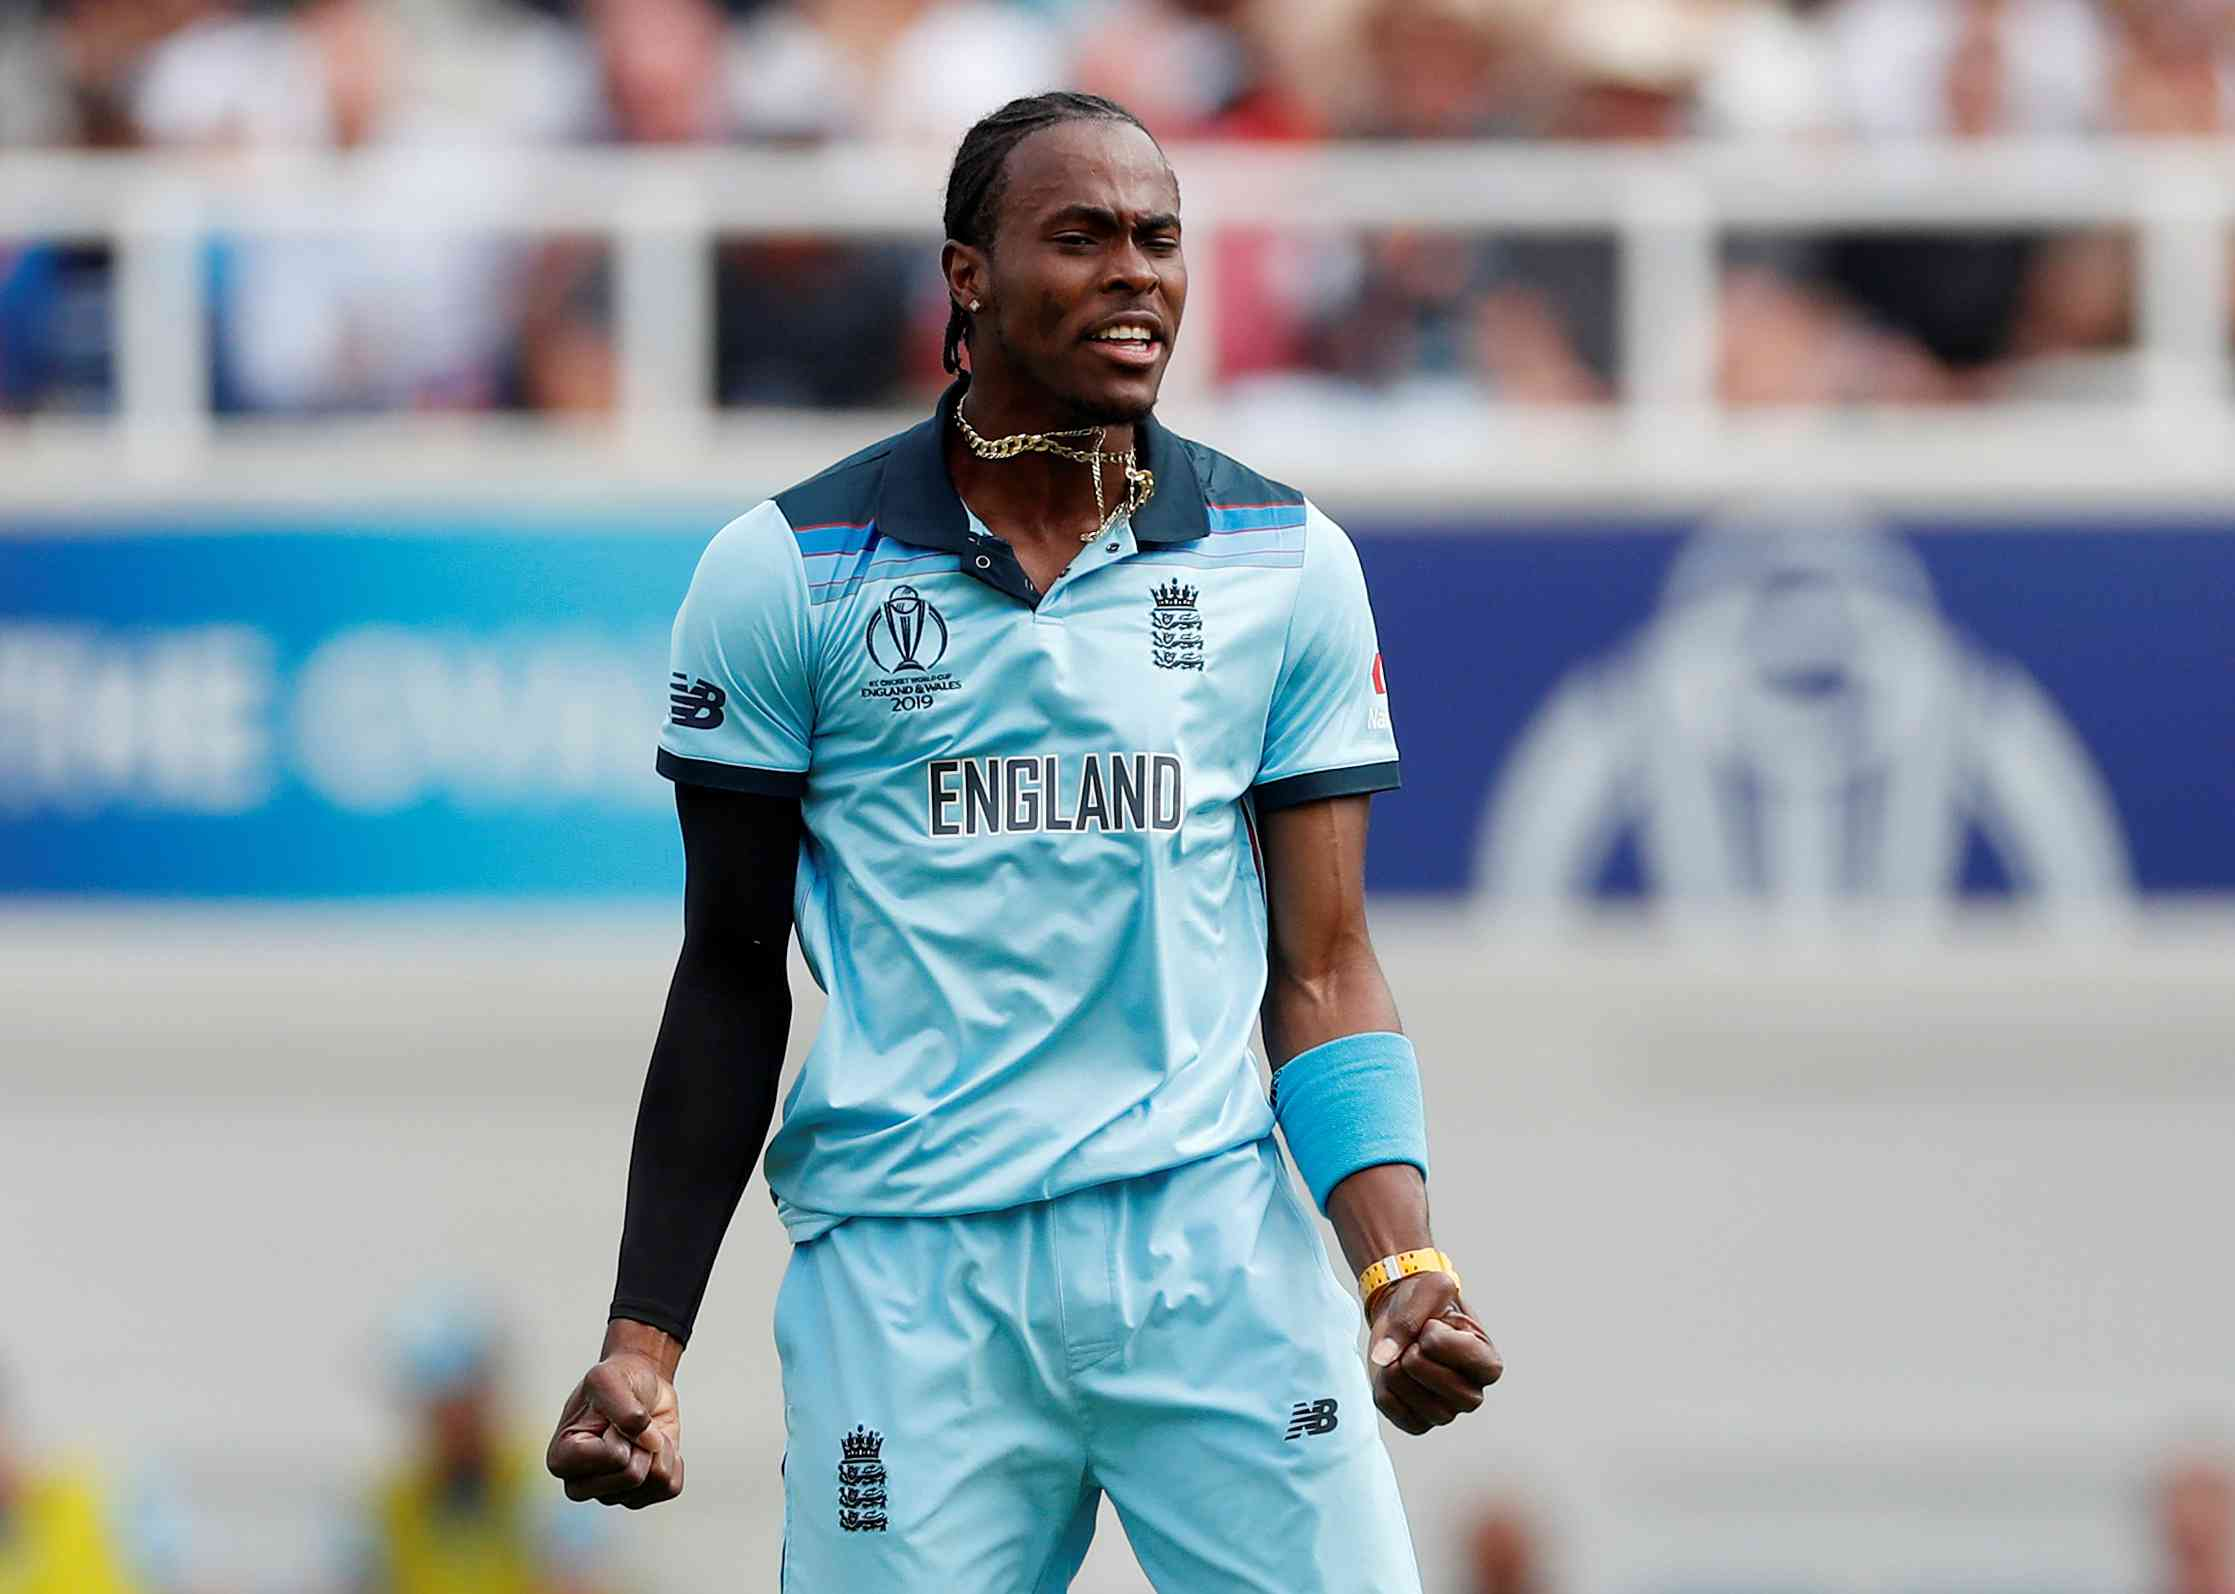 Jofra Archer during the ongoing World Cup – Reuters